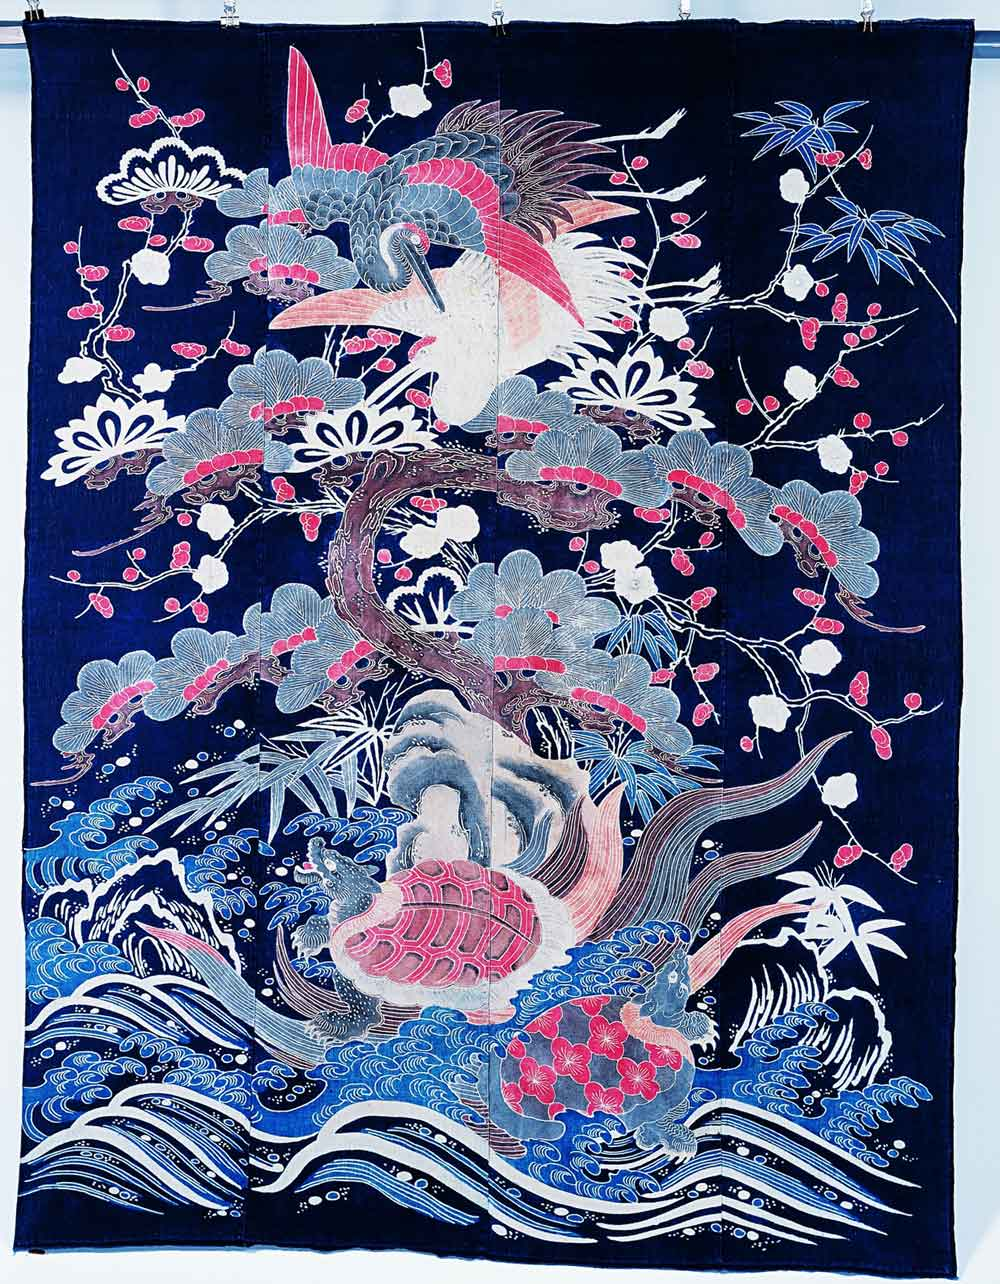 Bedspreads (futon), Horai Mountain motif, Japan, cotton fabric, tsutsugaki, 162.1 x 125.4 cm, Private Collection